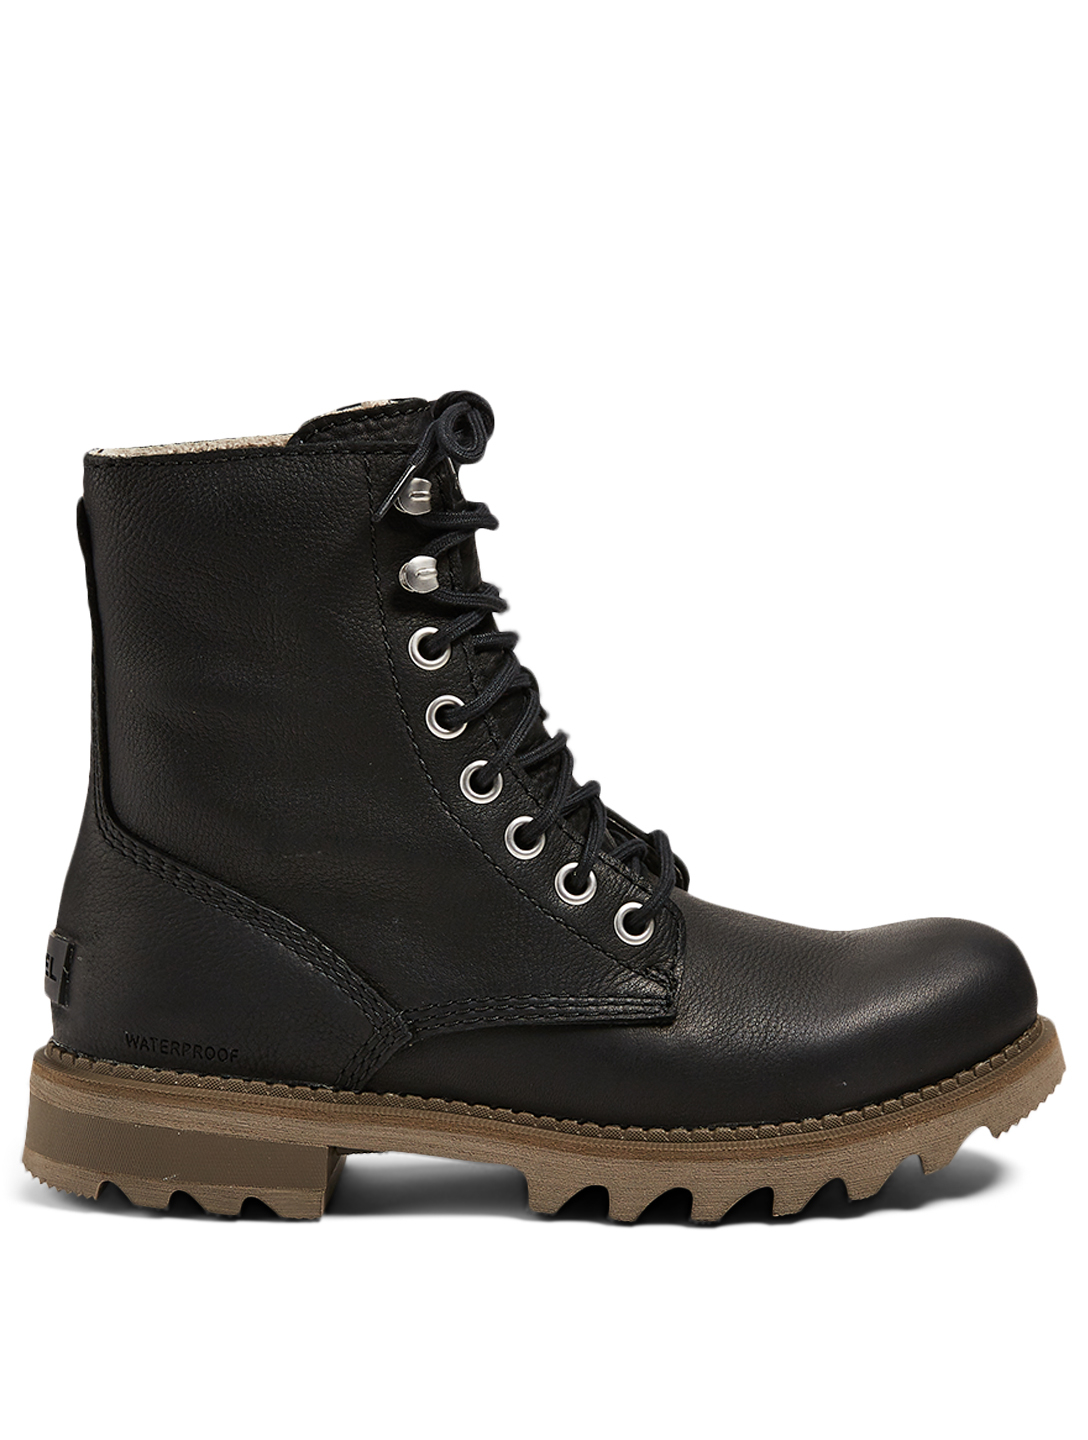 SOREL Mad Brick™ Leather Lace-Up Ankle Boots Men's Black